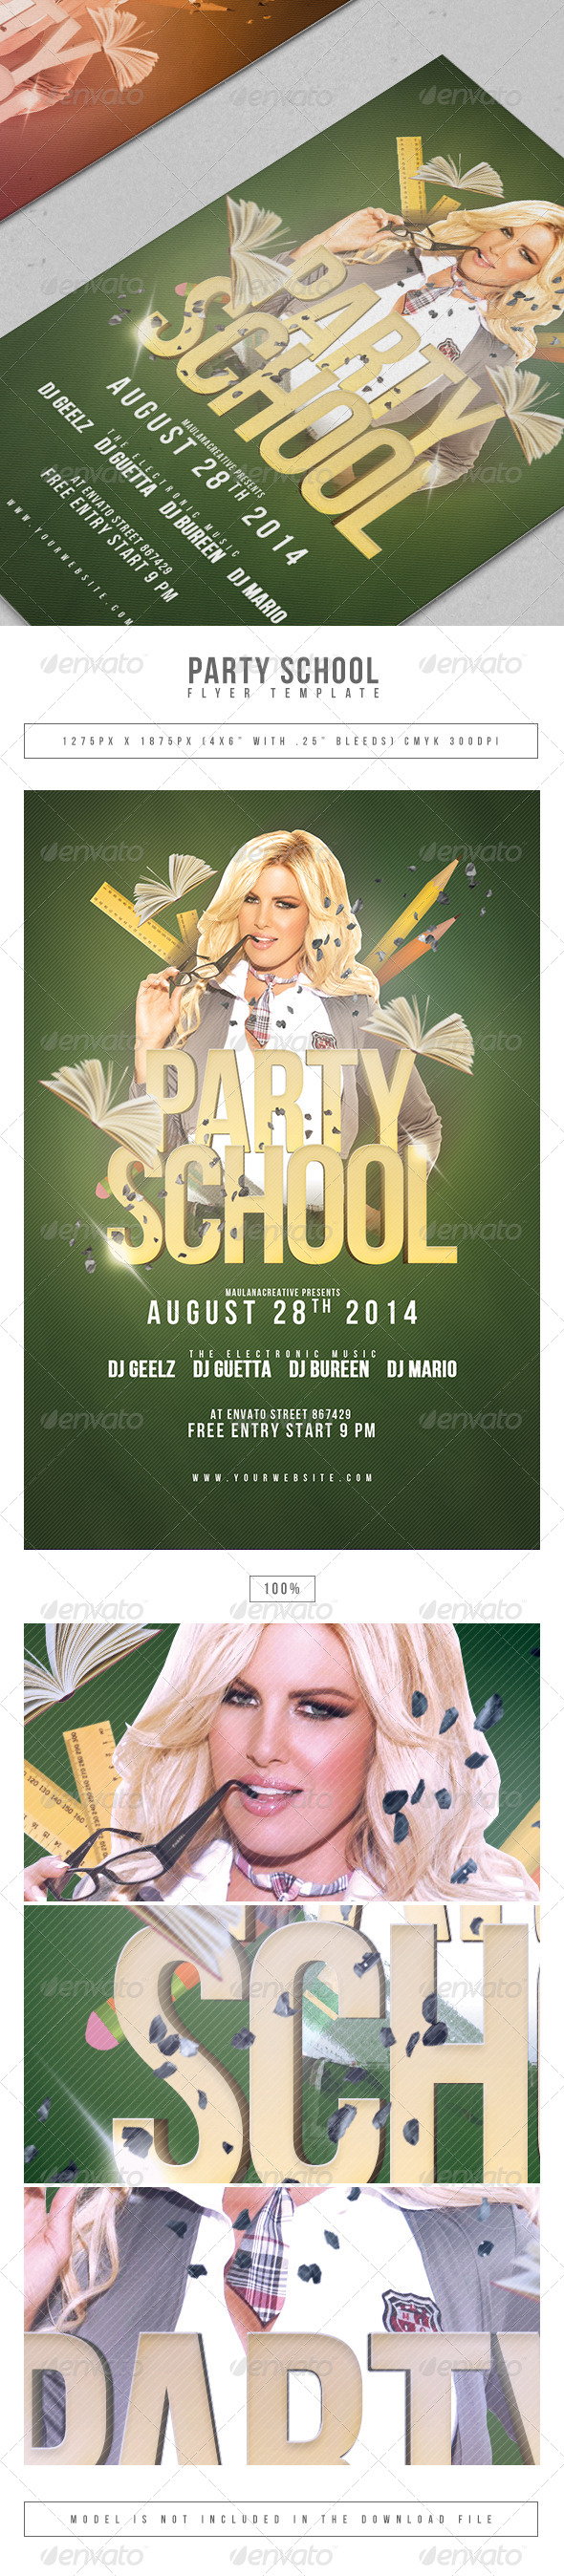 Party School Flyer Template - Clubs & Parties Events